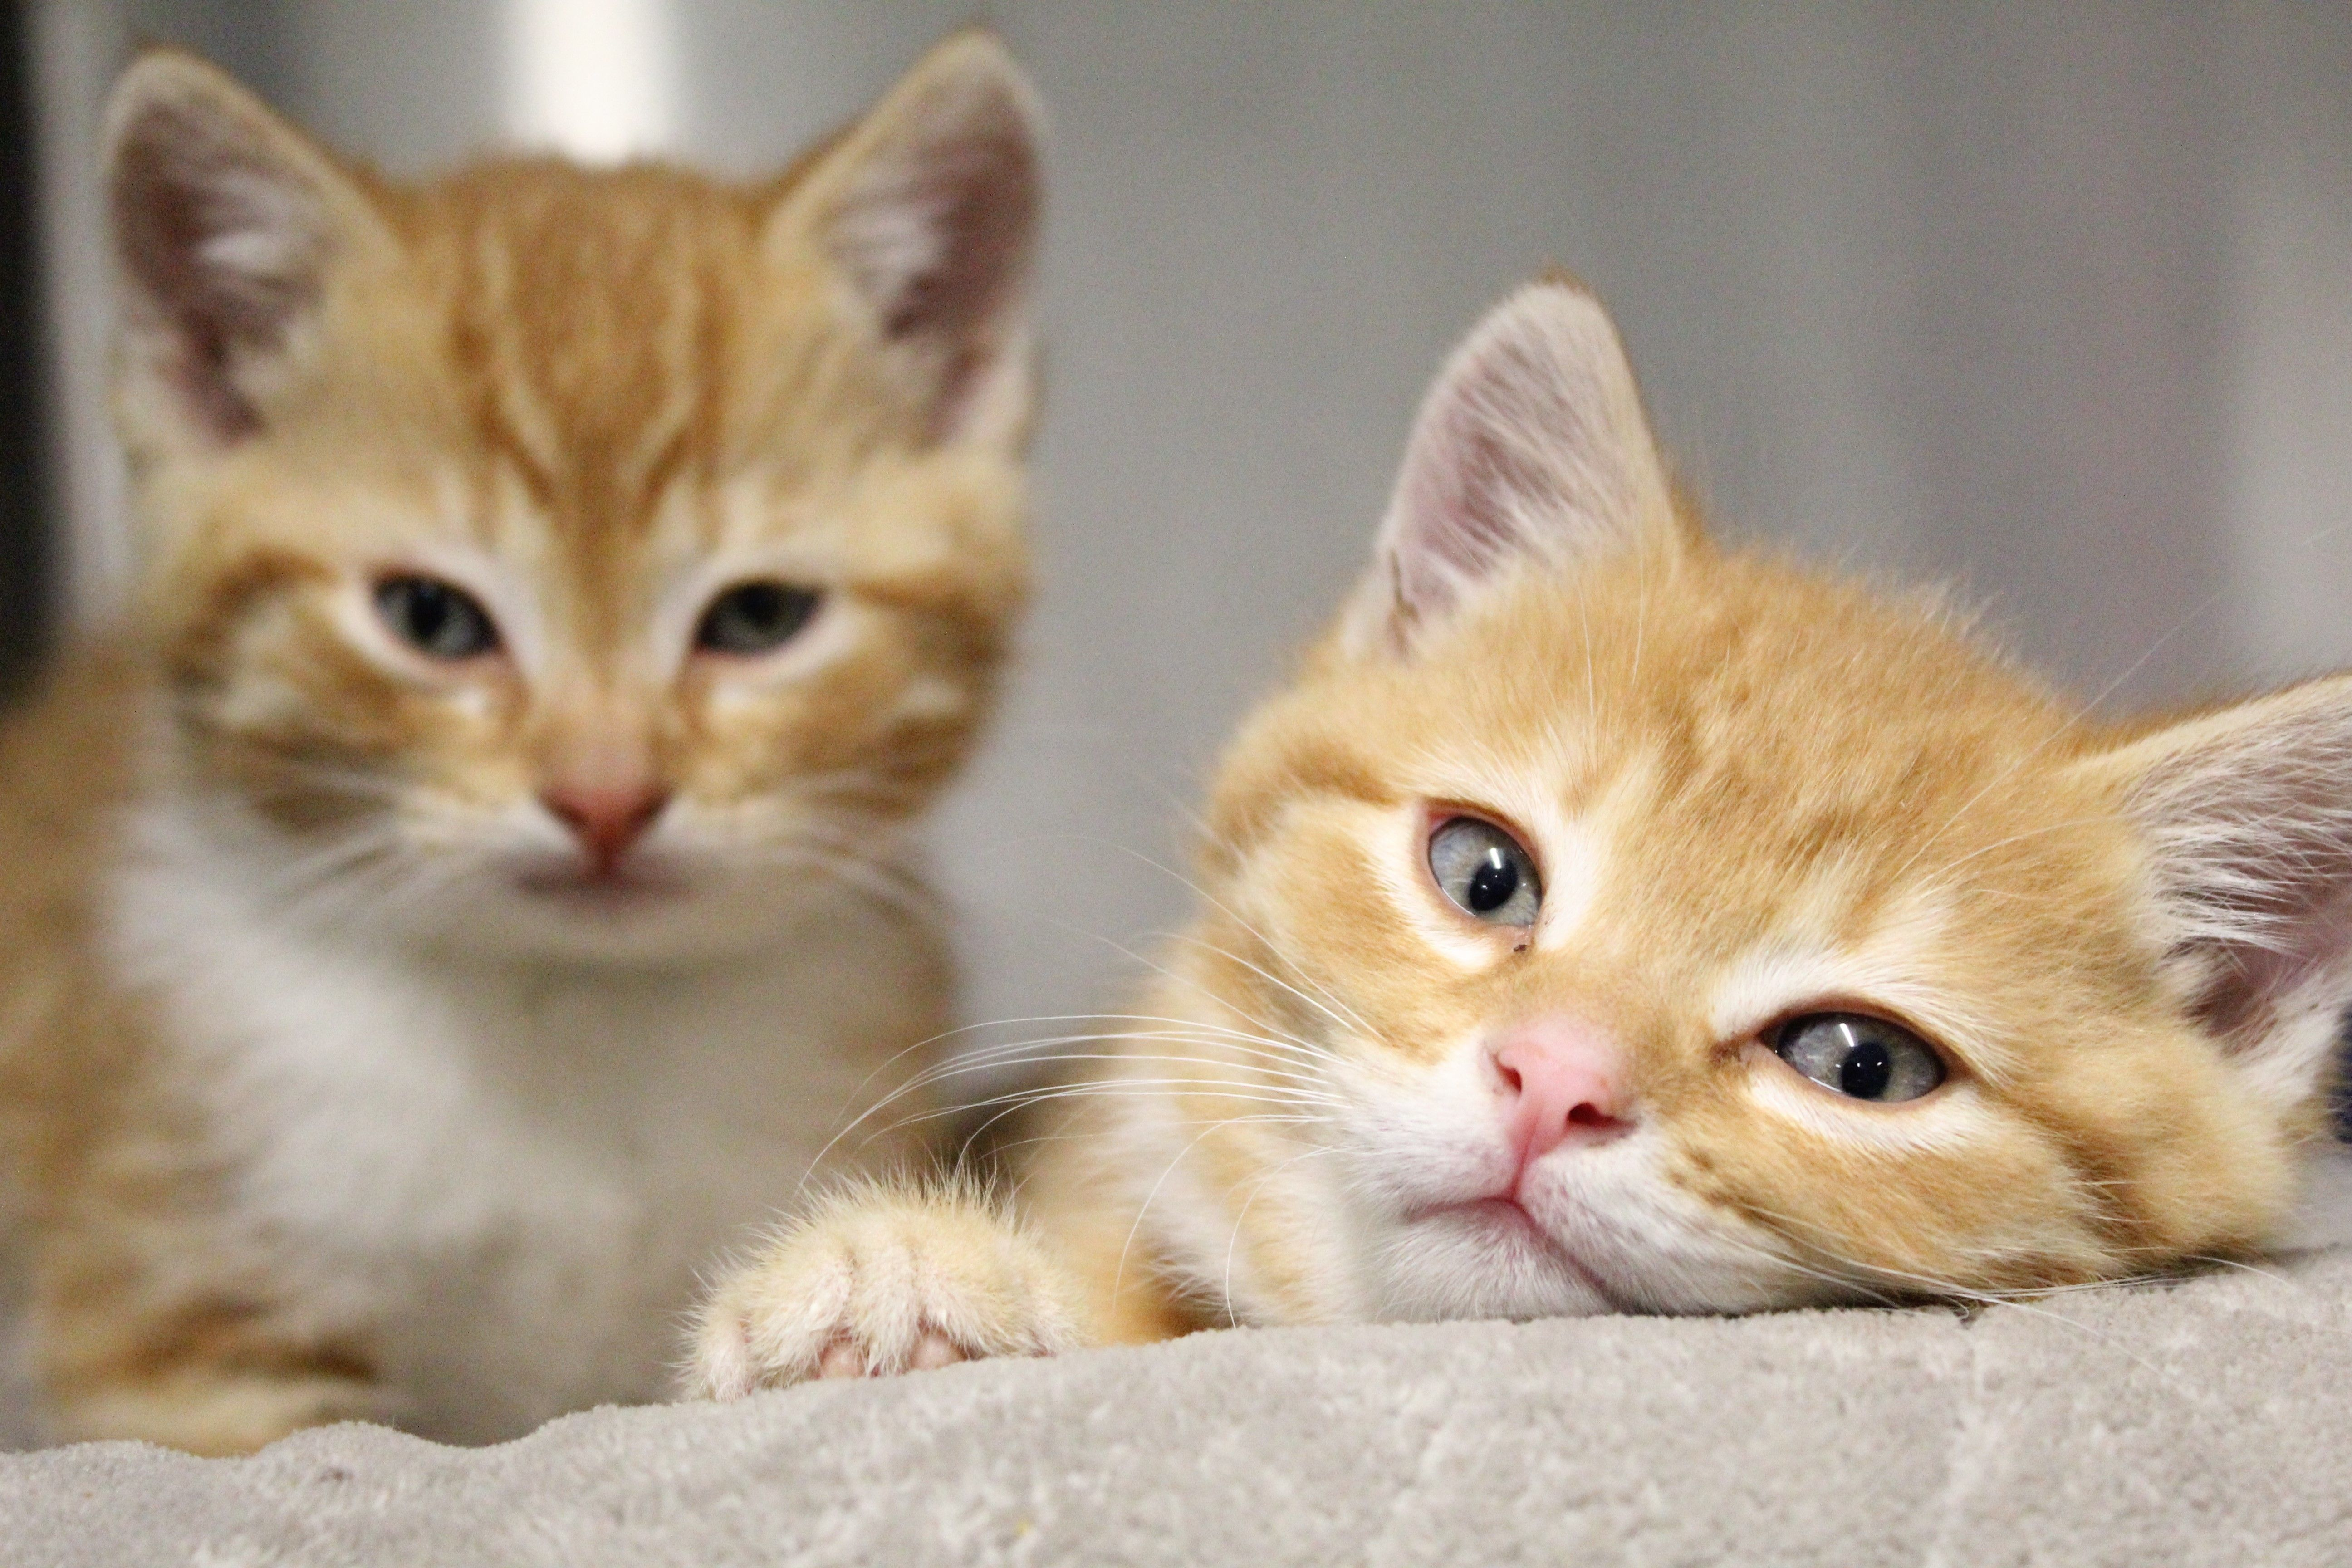 Right Meow at TCHS, Kittens Are 2 Purr 1!